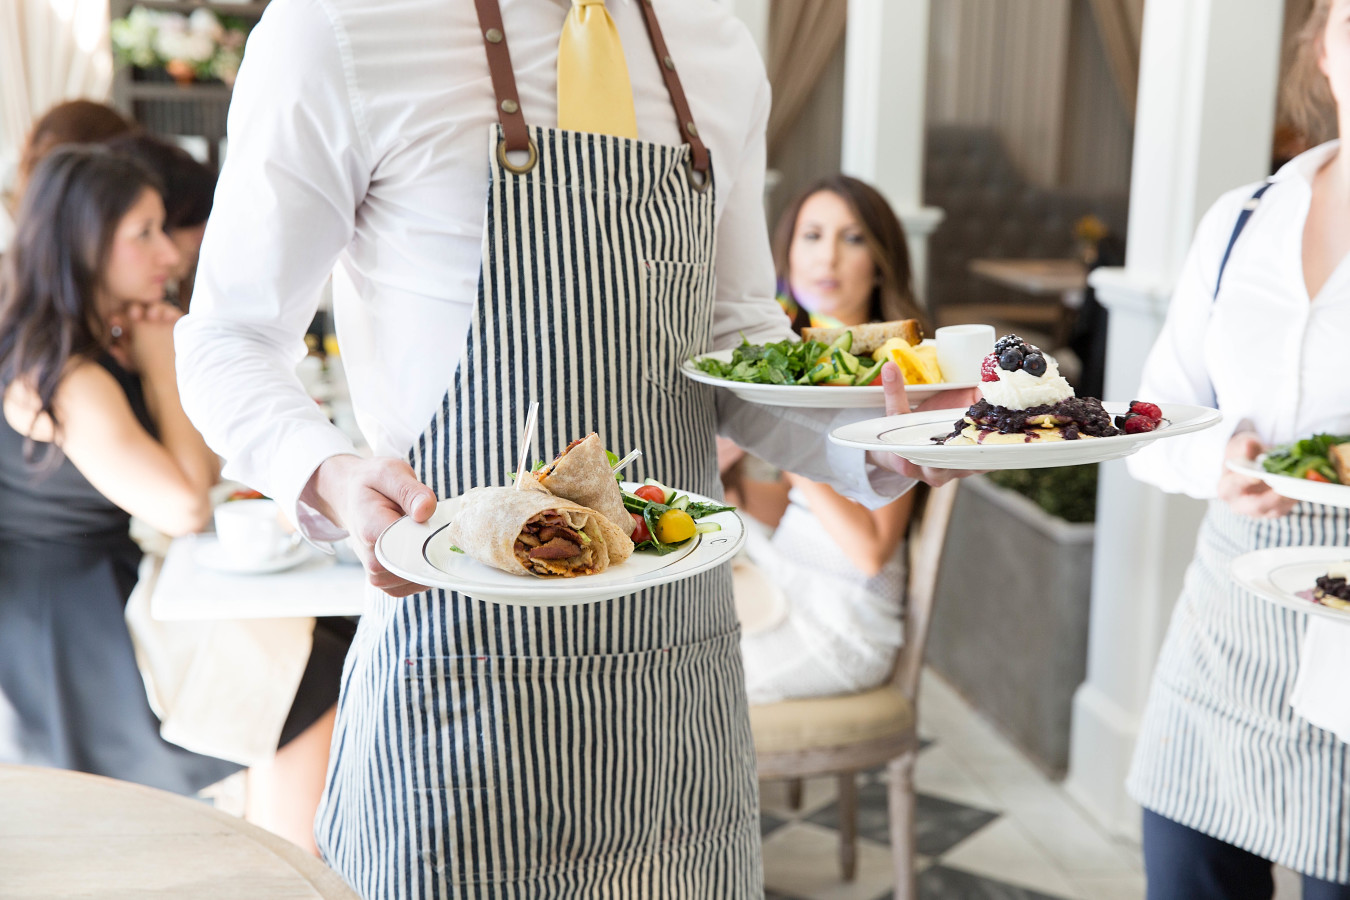 waiter-serving-bridal-brunch http://itgirlweddings.com/tips-for-creating-a-photo-worthy-bridal-shower/